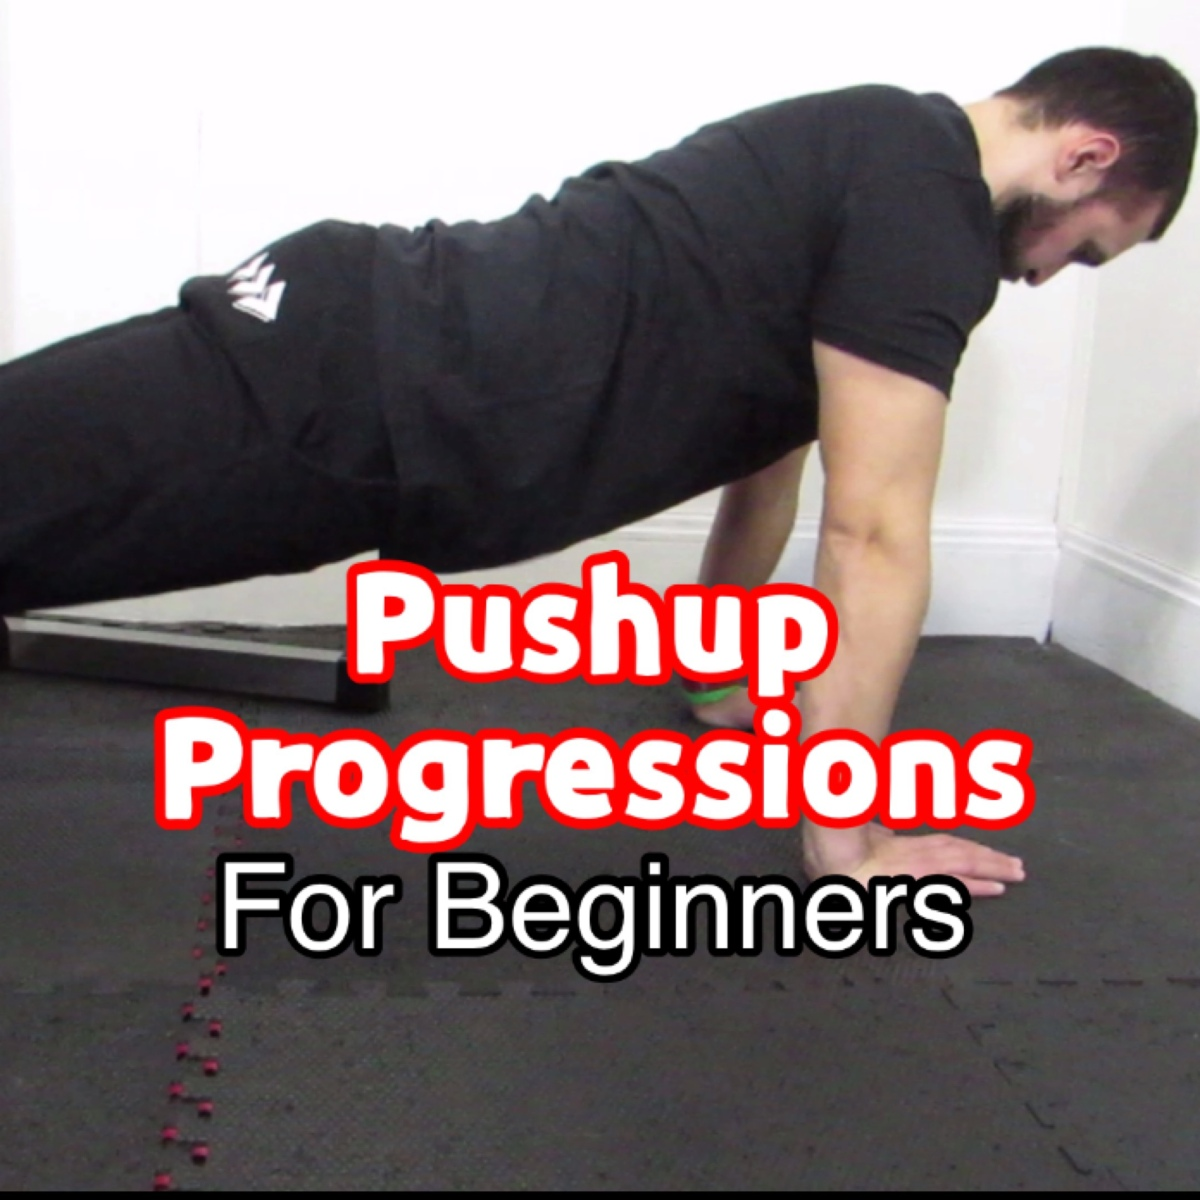 Pushup Progressions For Beginners